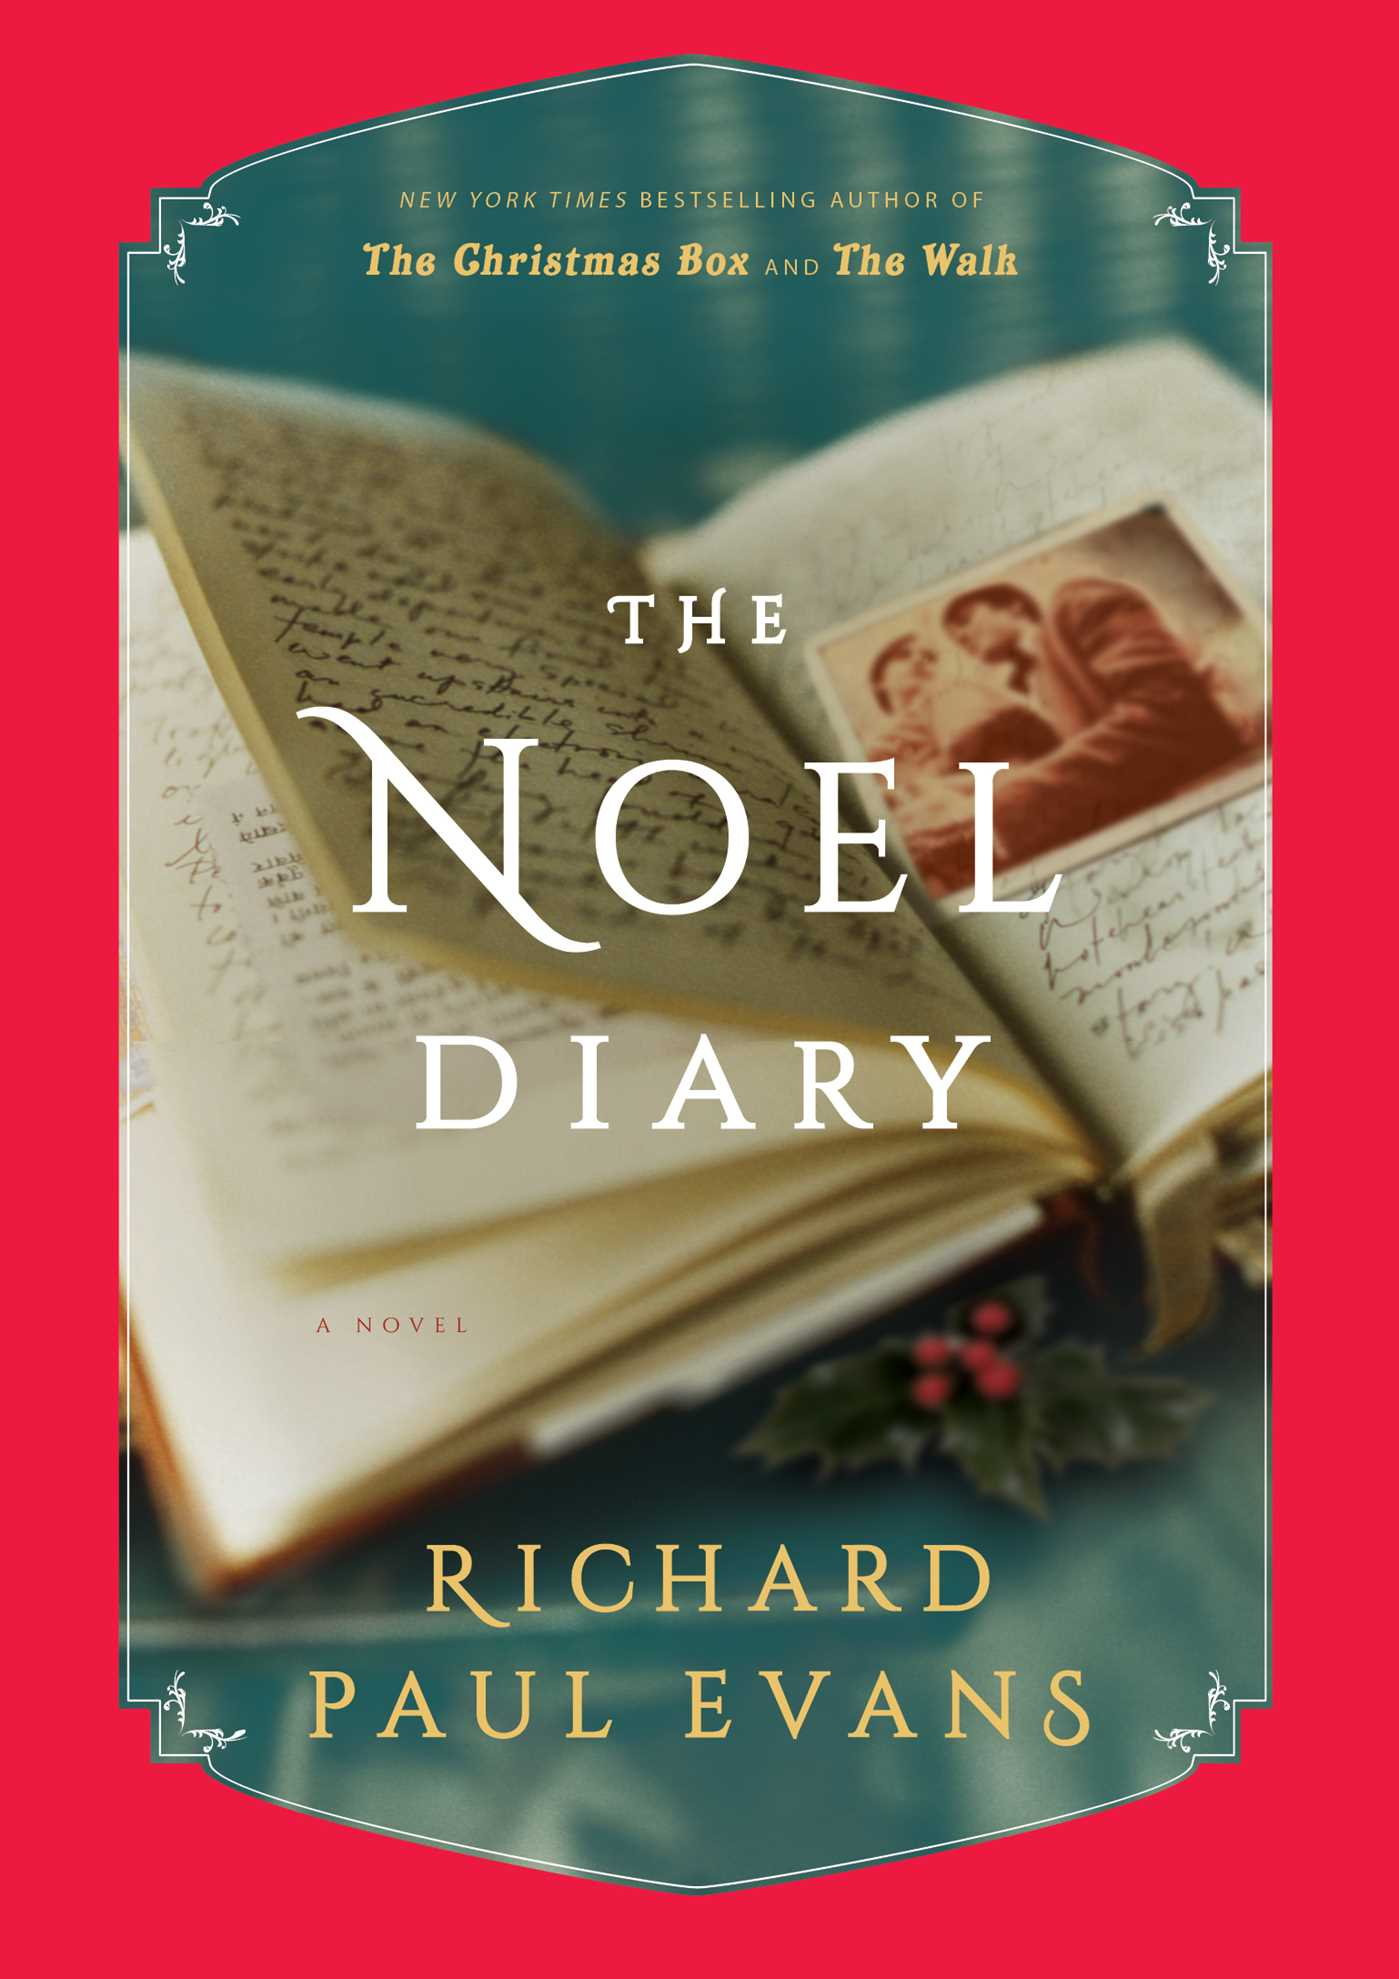 The Noel Diary by Richard Paul Evans